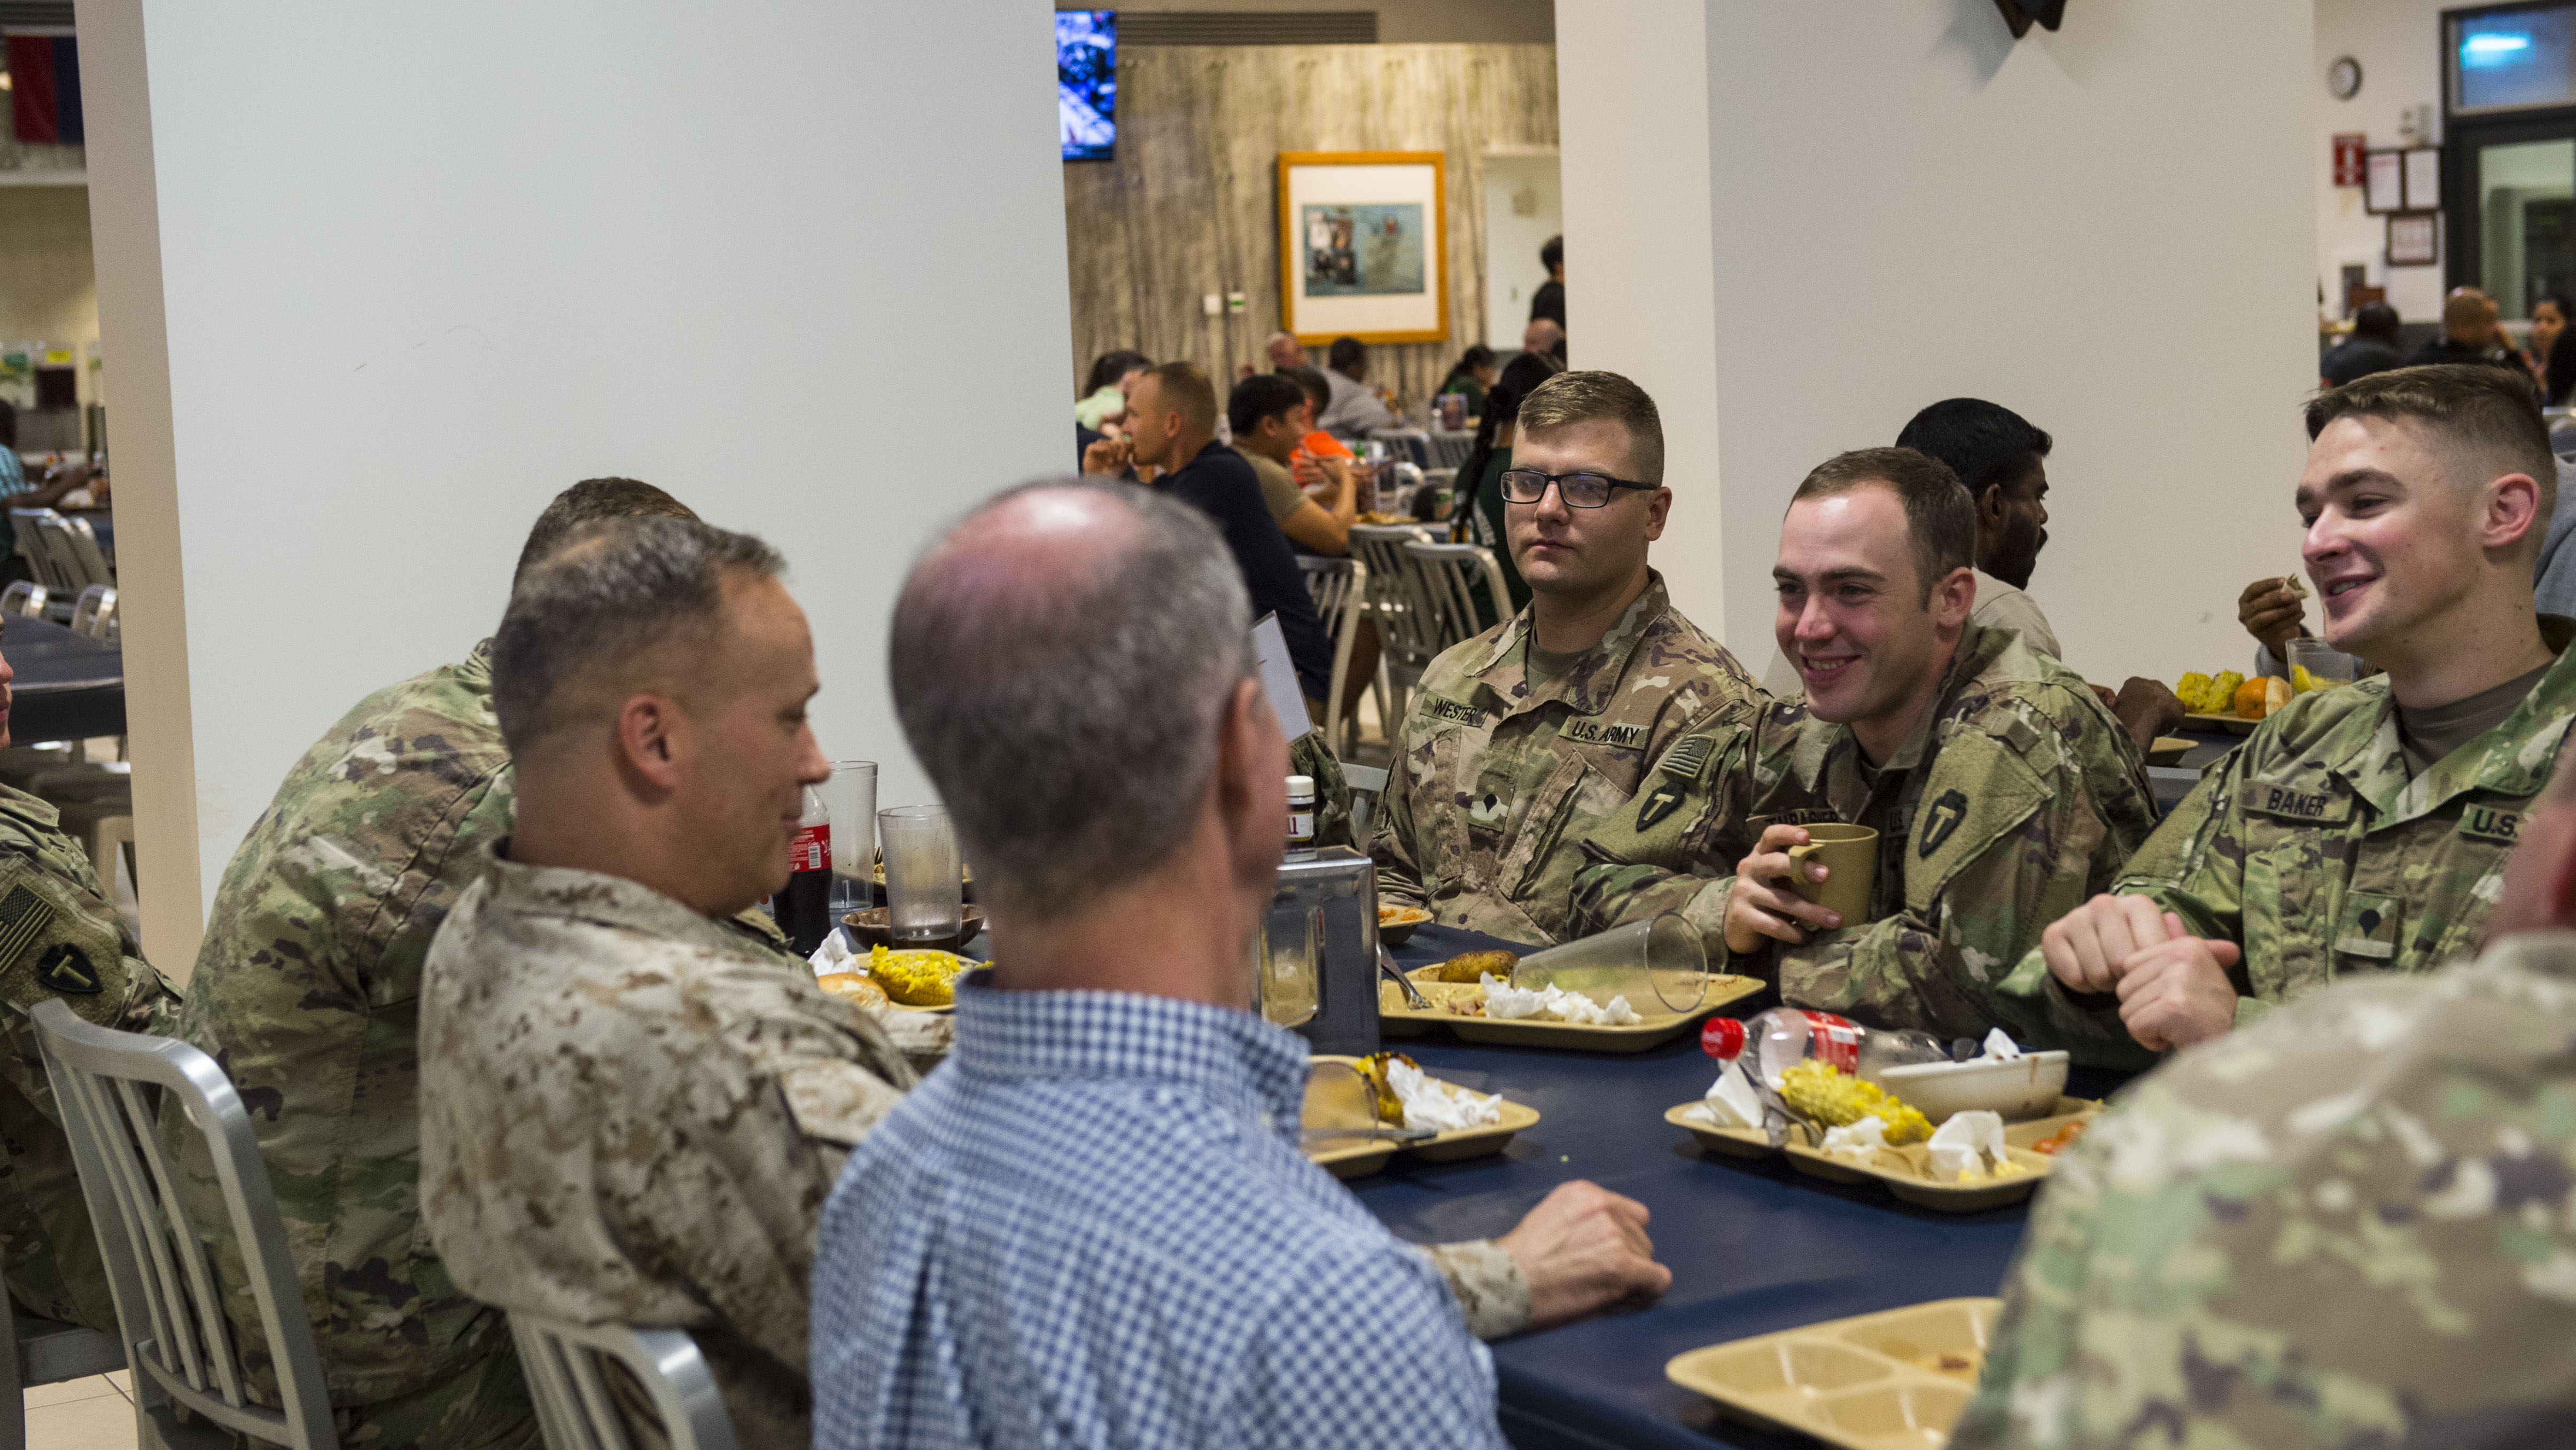 U.S. Rep. Mac Thornberry, 13th District of Texas, has dinner with U.S. Marine Corps Maj. Gen. David Furness, Commanding General of the Combined Joint Task Force - Horn of Africa (CJTF-HOA), and other service members deployed to Camp Lemonnier, Djibouti, during a visit to the CJTF-HOA March 24, 2018. Thornberry, who is the U.S. House of Representatives Armed Services Committee Chairman, stopped by Camp Lemonnier before visiting other locations within the CJTF-HOA area of responsibility. The Armed Services Committee has the responsibility to oversee the Pentagon, all military services, and all Department of Defense agencies, including their budgets and policies. (U.S. Air Force photo by Staff Sgt. Timothy Moore)